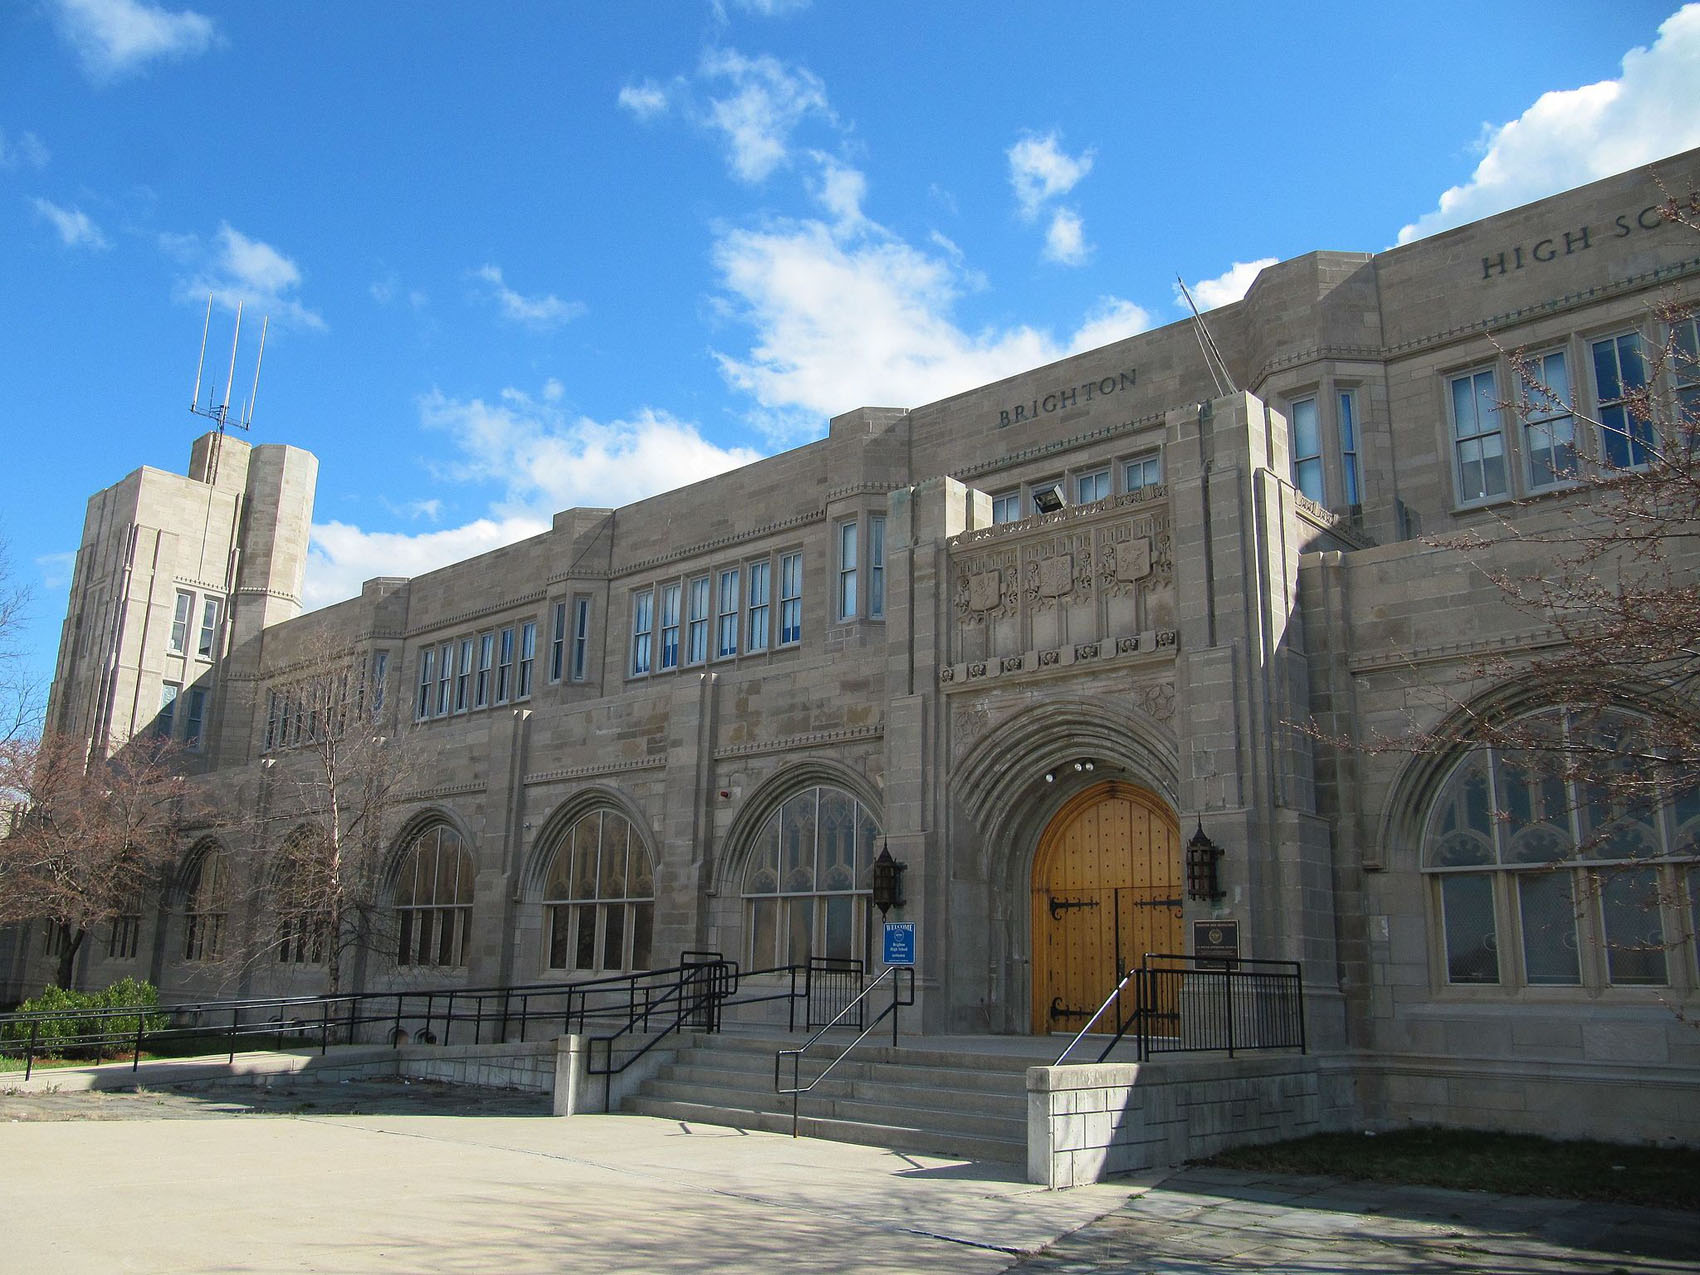 Brighton High School. (Wikimedia Commons)